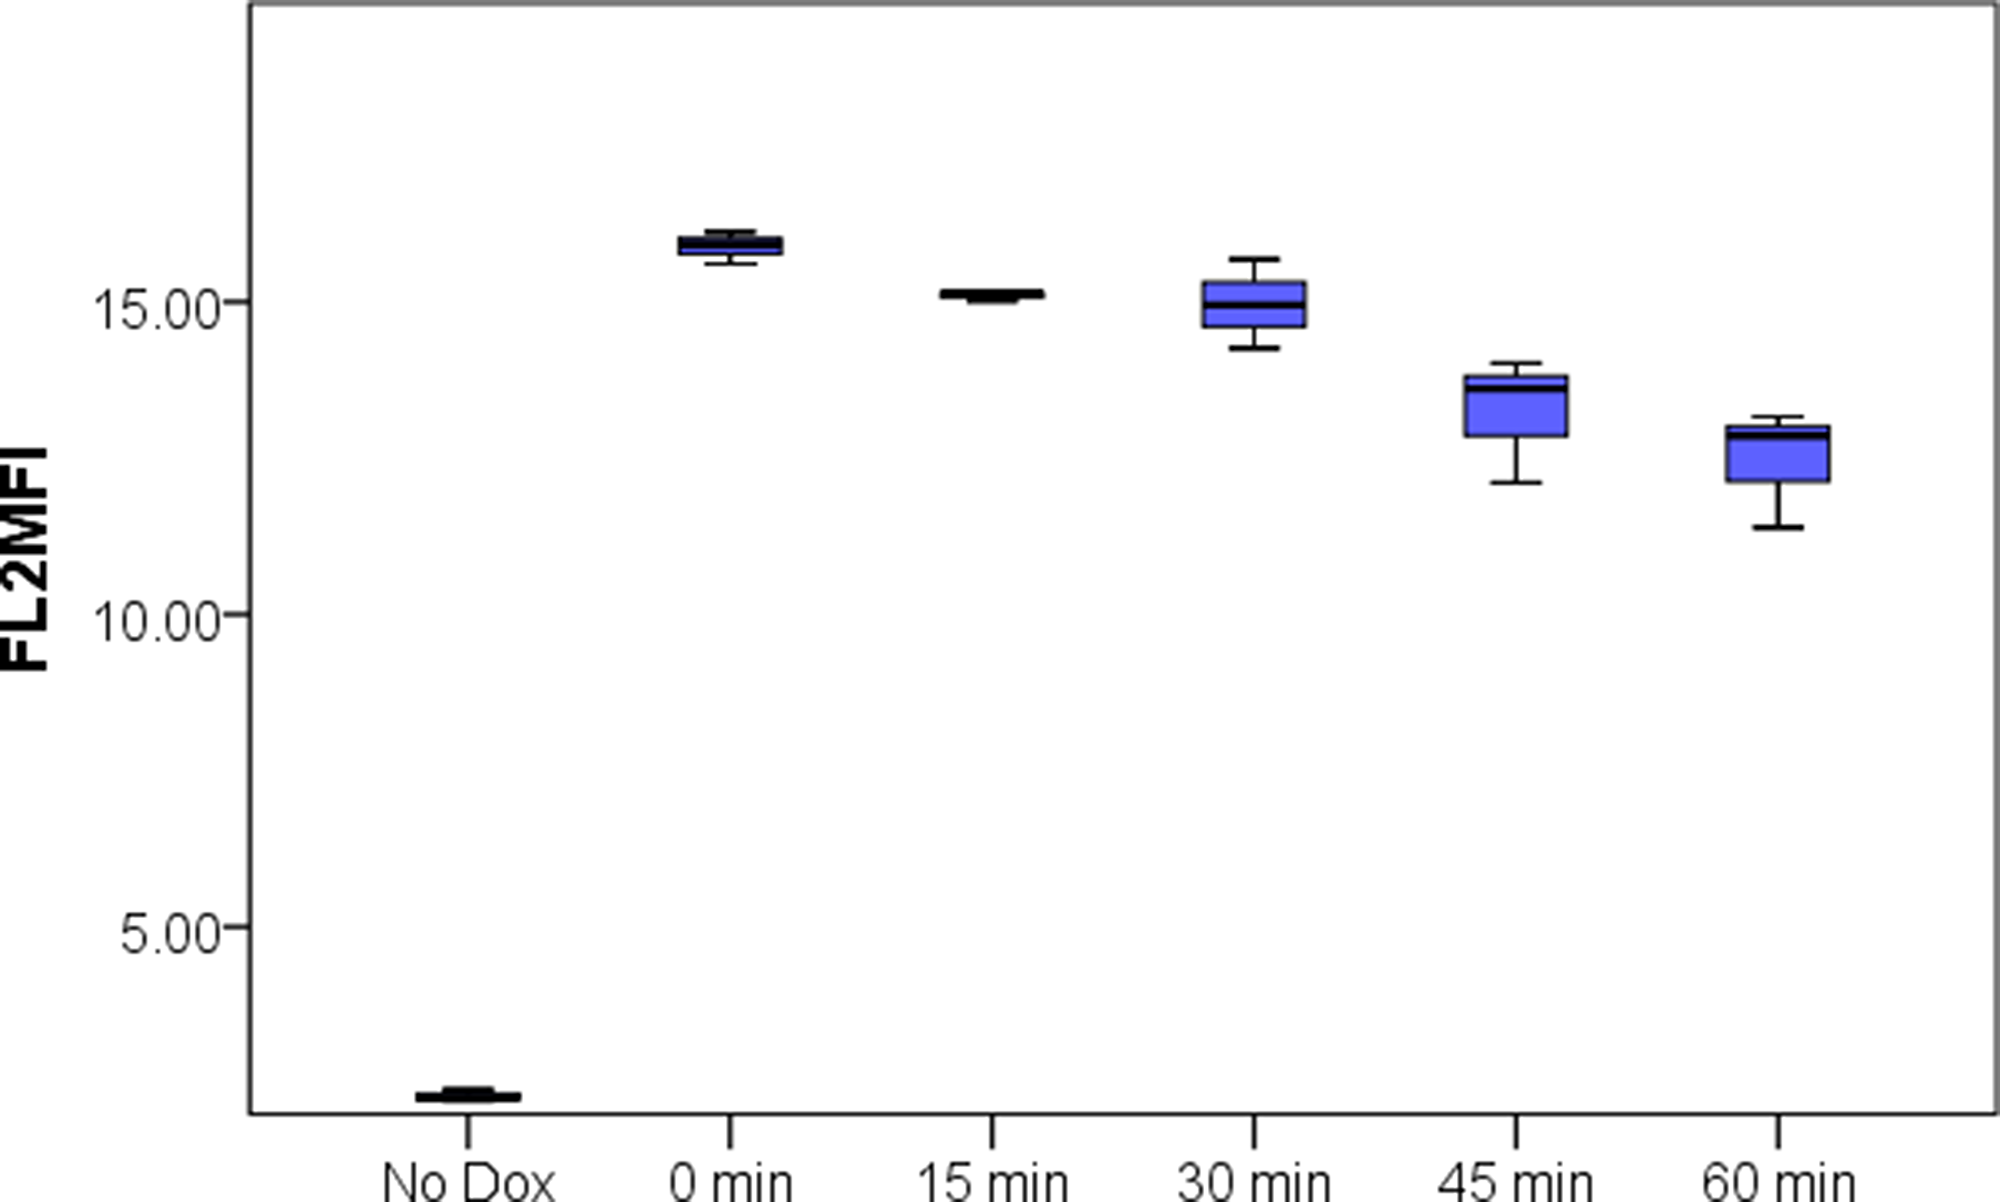 Leaching of Doxorubicin from PMPDox over 60 min period studied by flow cytometry.